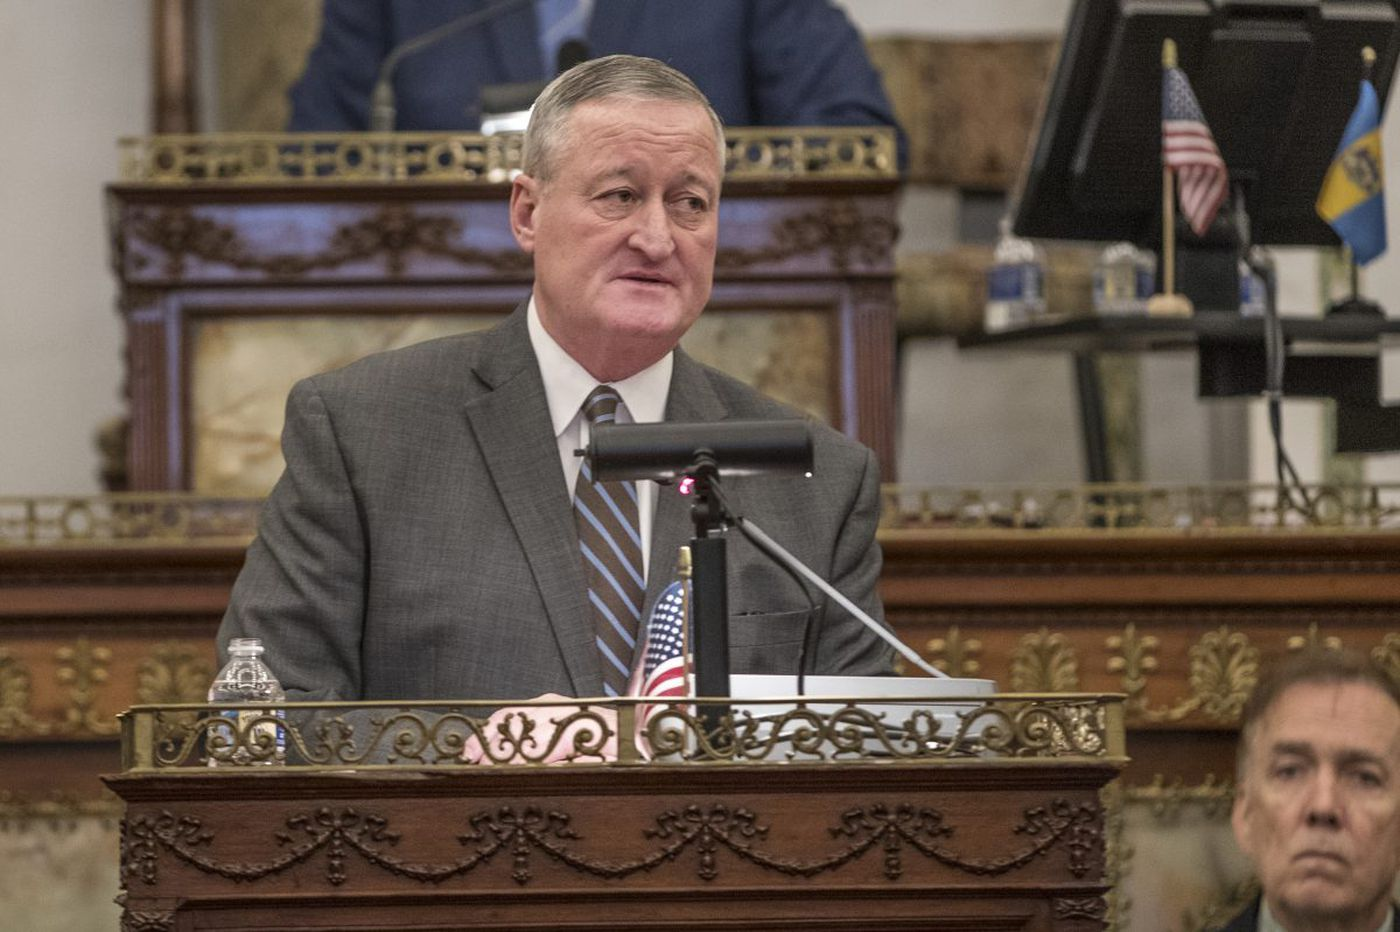 Kenney calls Philly students 'underdogs,' Pa. leaders call for rep. accused of misconduct to resign | Morning Newsletter